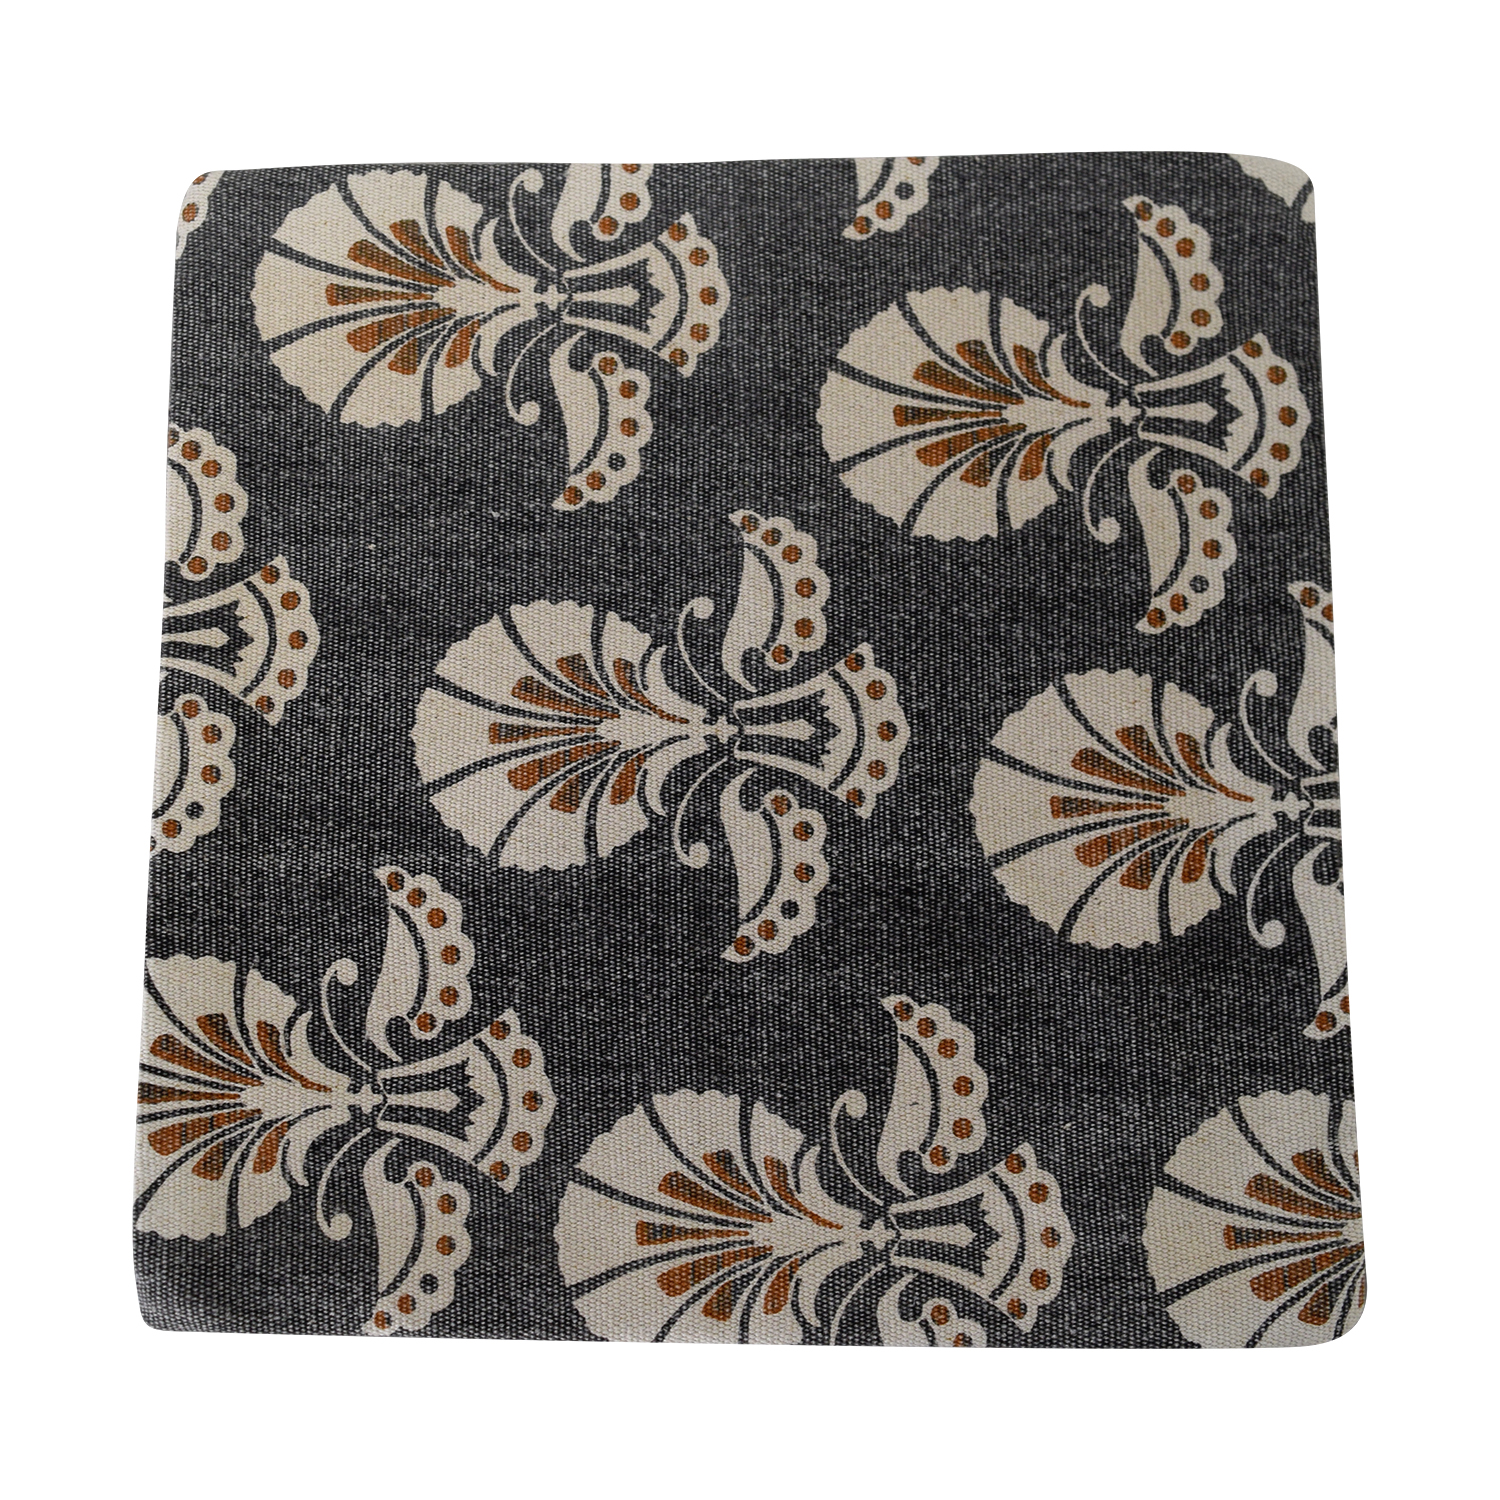 Obeetee Obeetee Minaza Grey Cushion Cover price